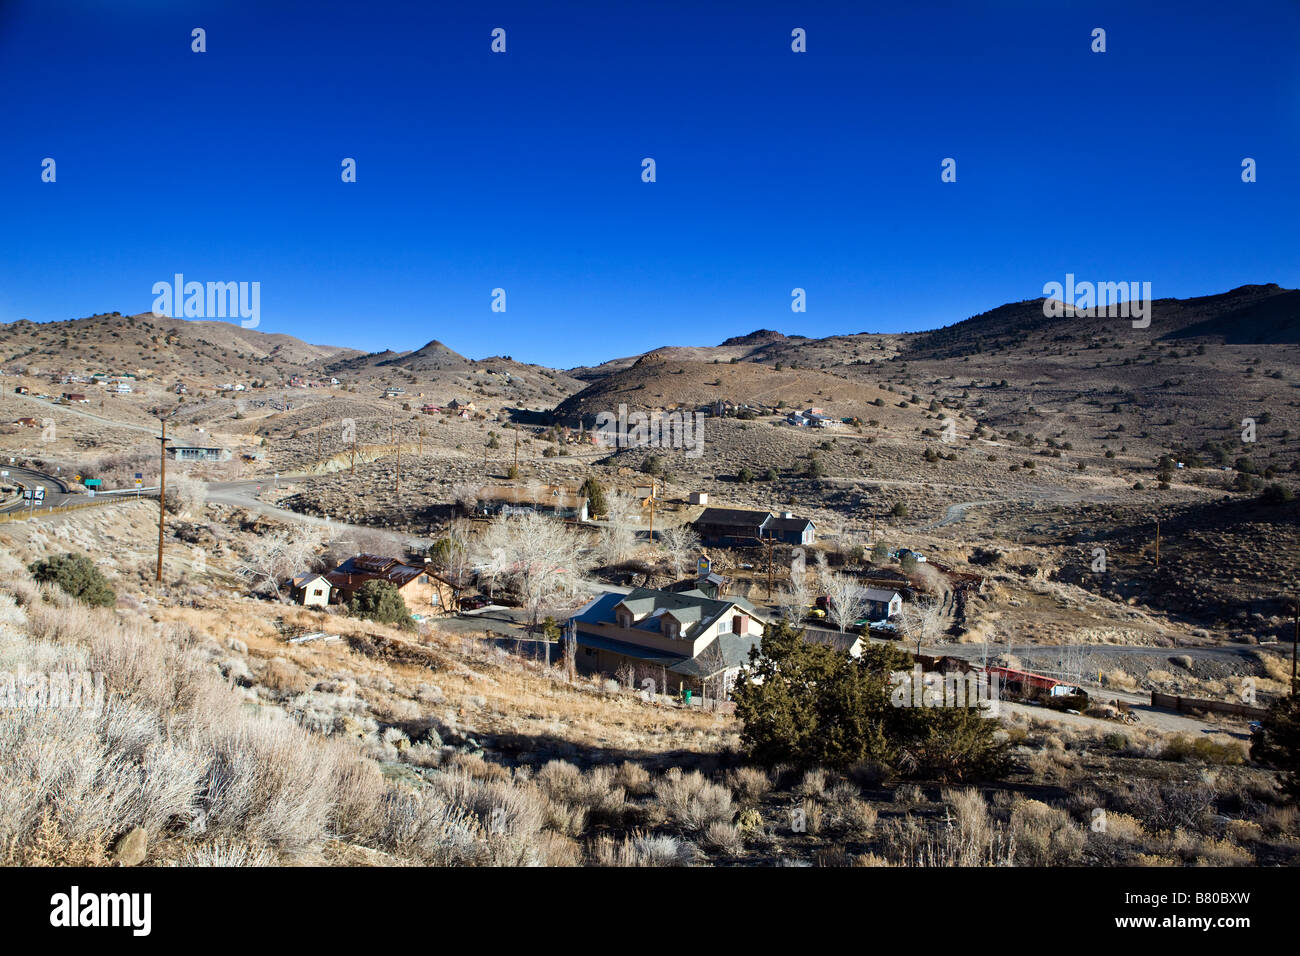 The town of Silver City Nevada with houses and buildings nestled between rolling hills south of Virginia City NV - Stock Image